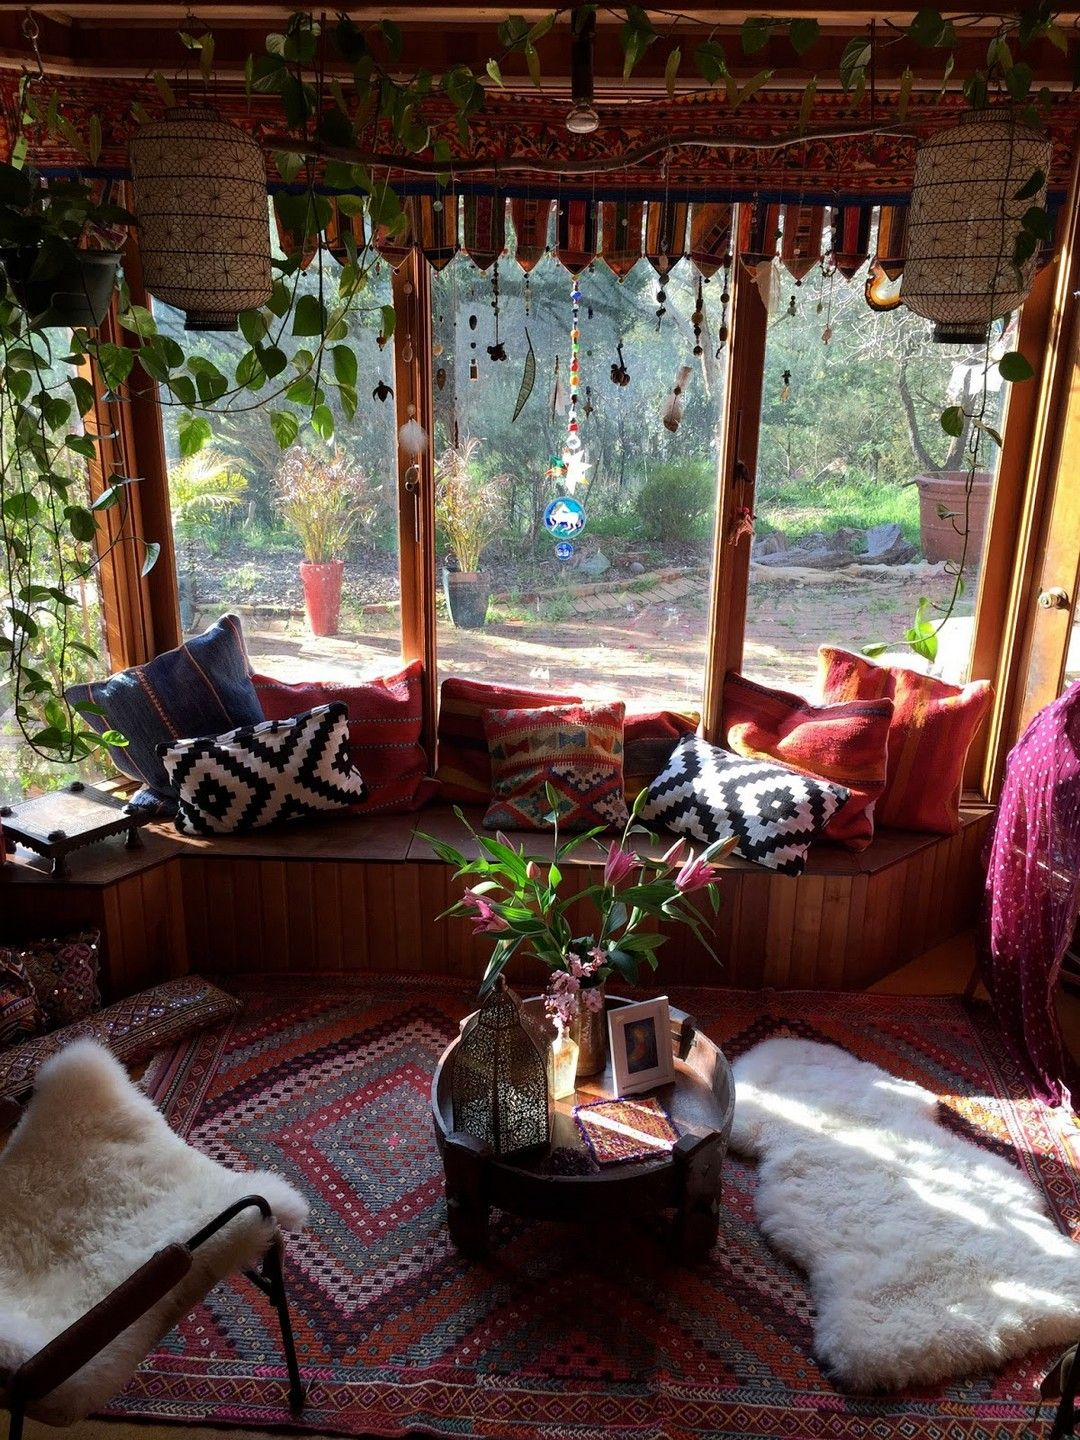 27 Rustic And Cozy Boho Cabin Makeover On A Budget DecorBohemian DecoratingBohemian